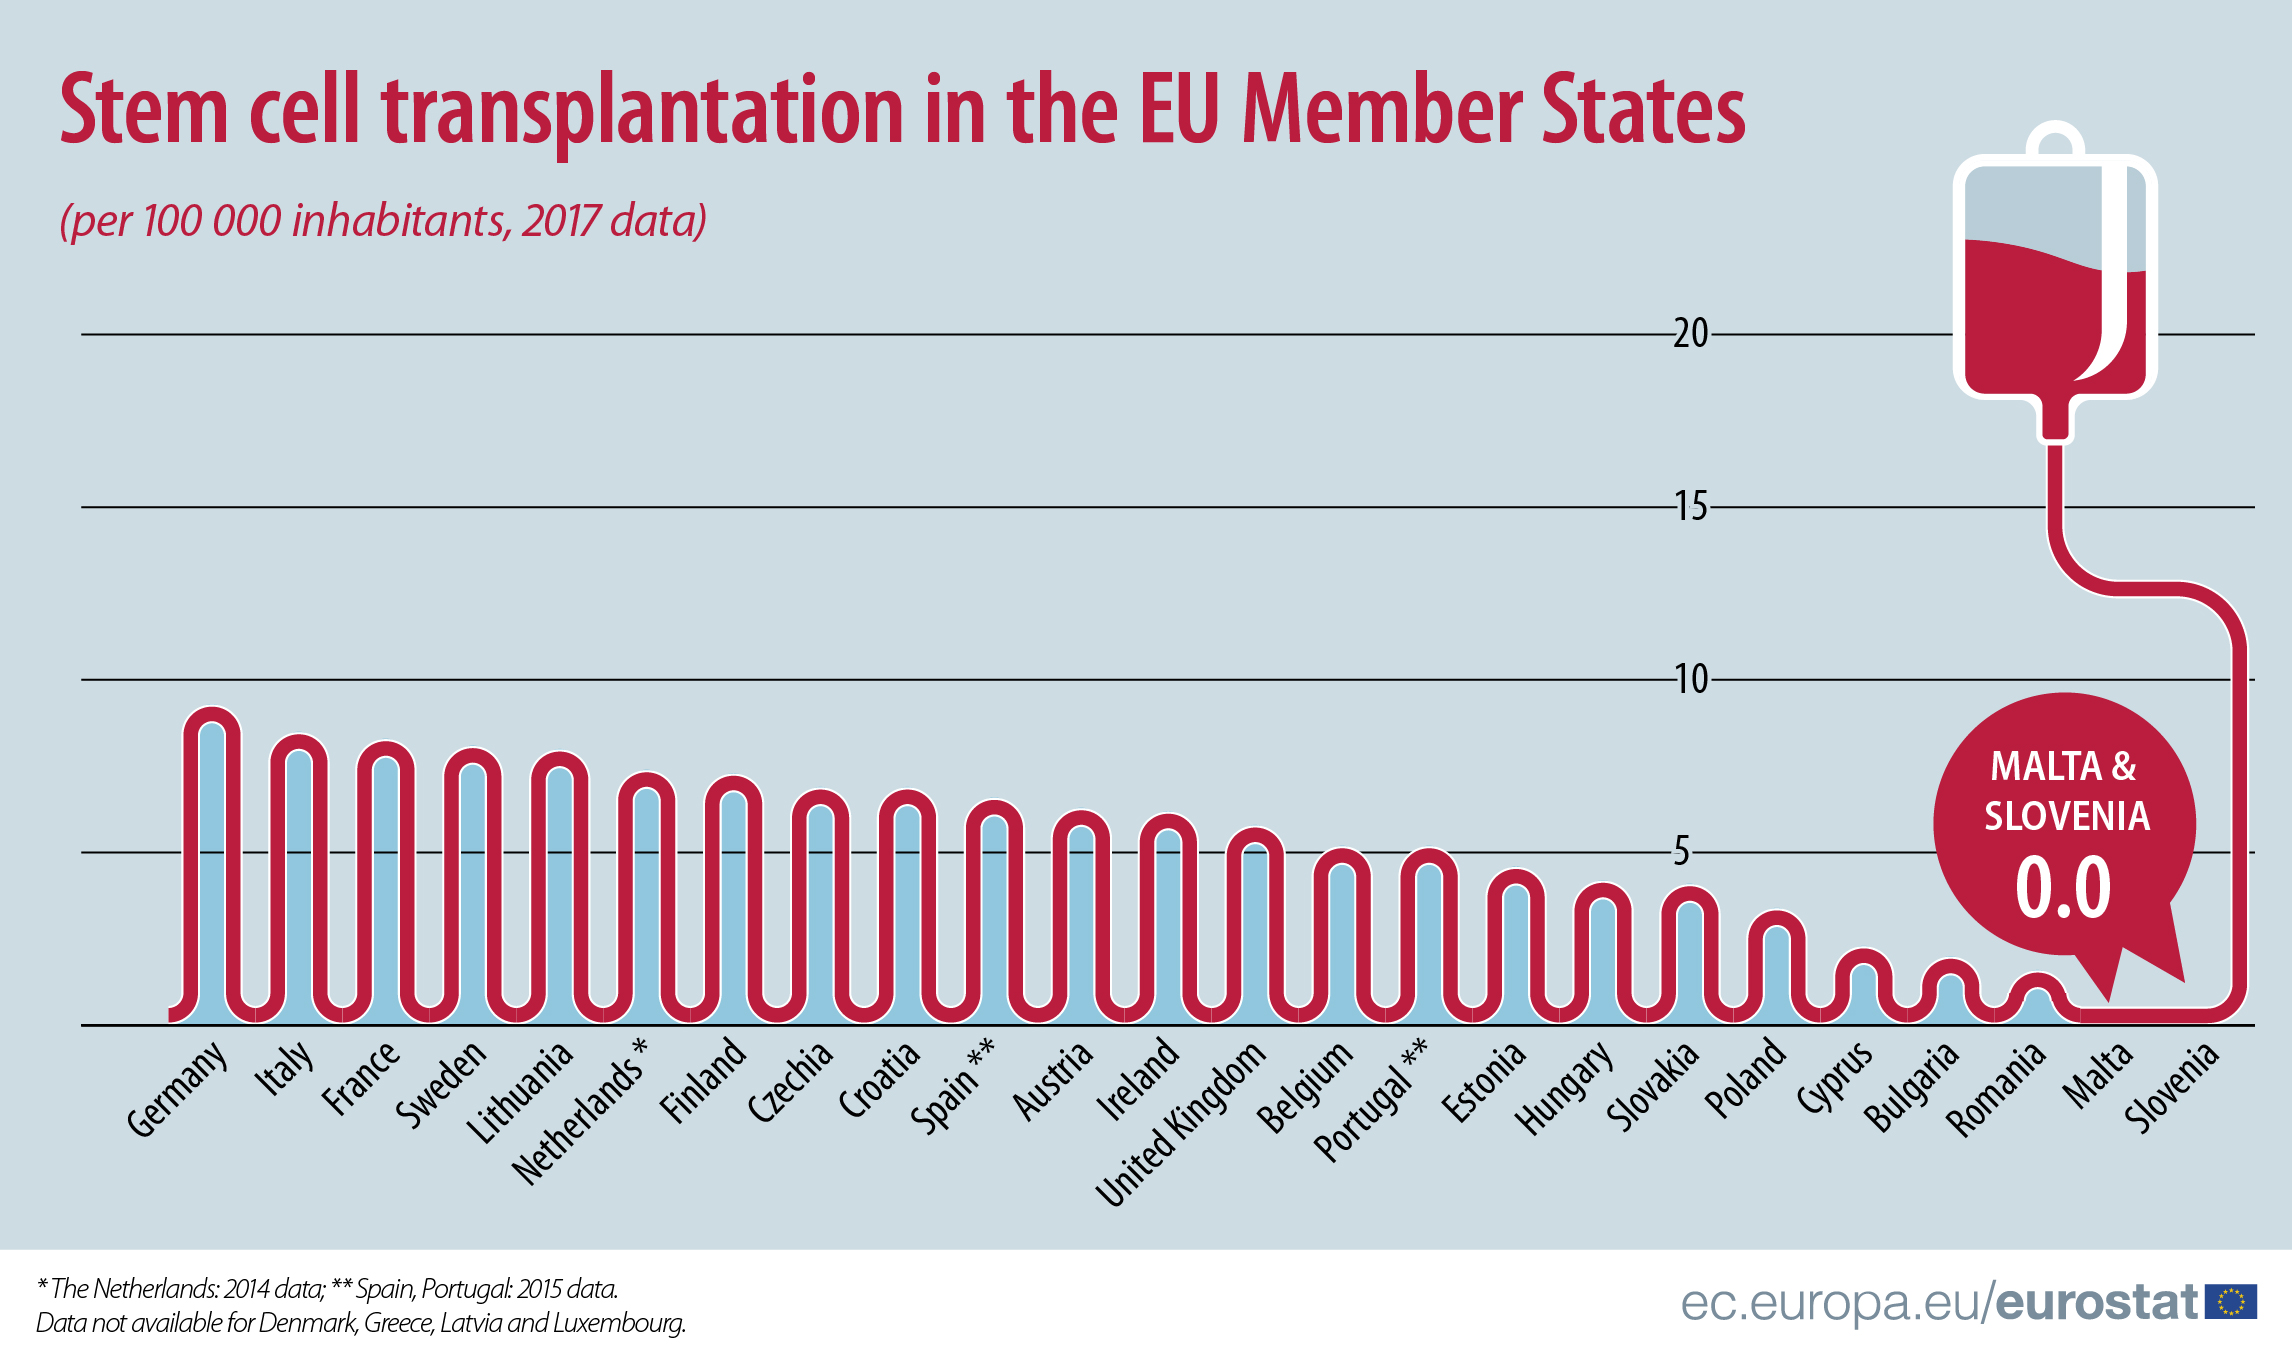 Stem cell transplantation in the EU, 2017